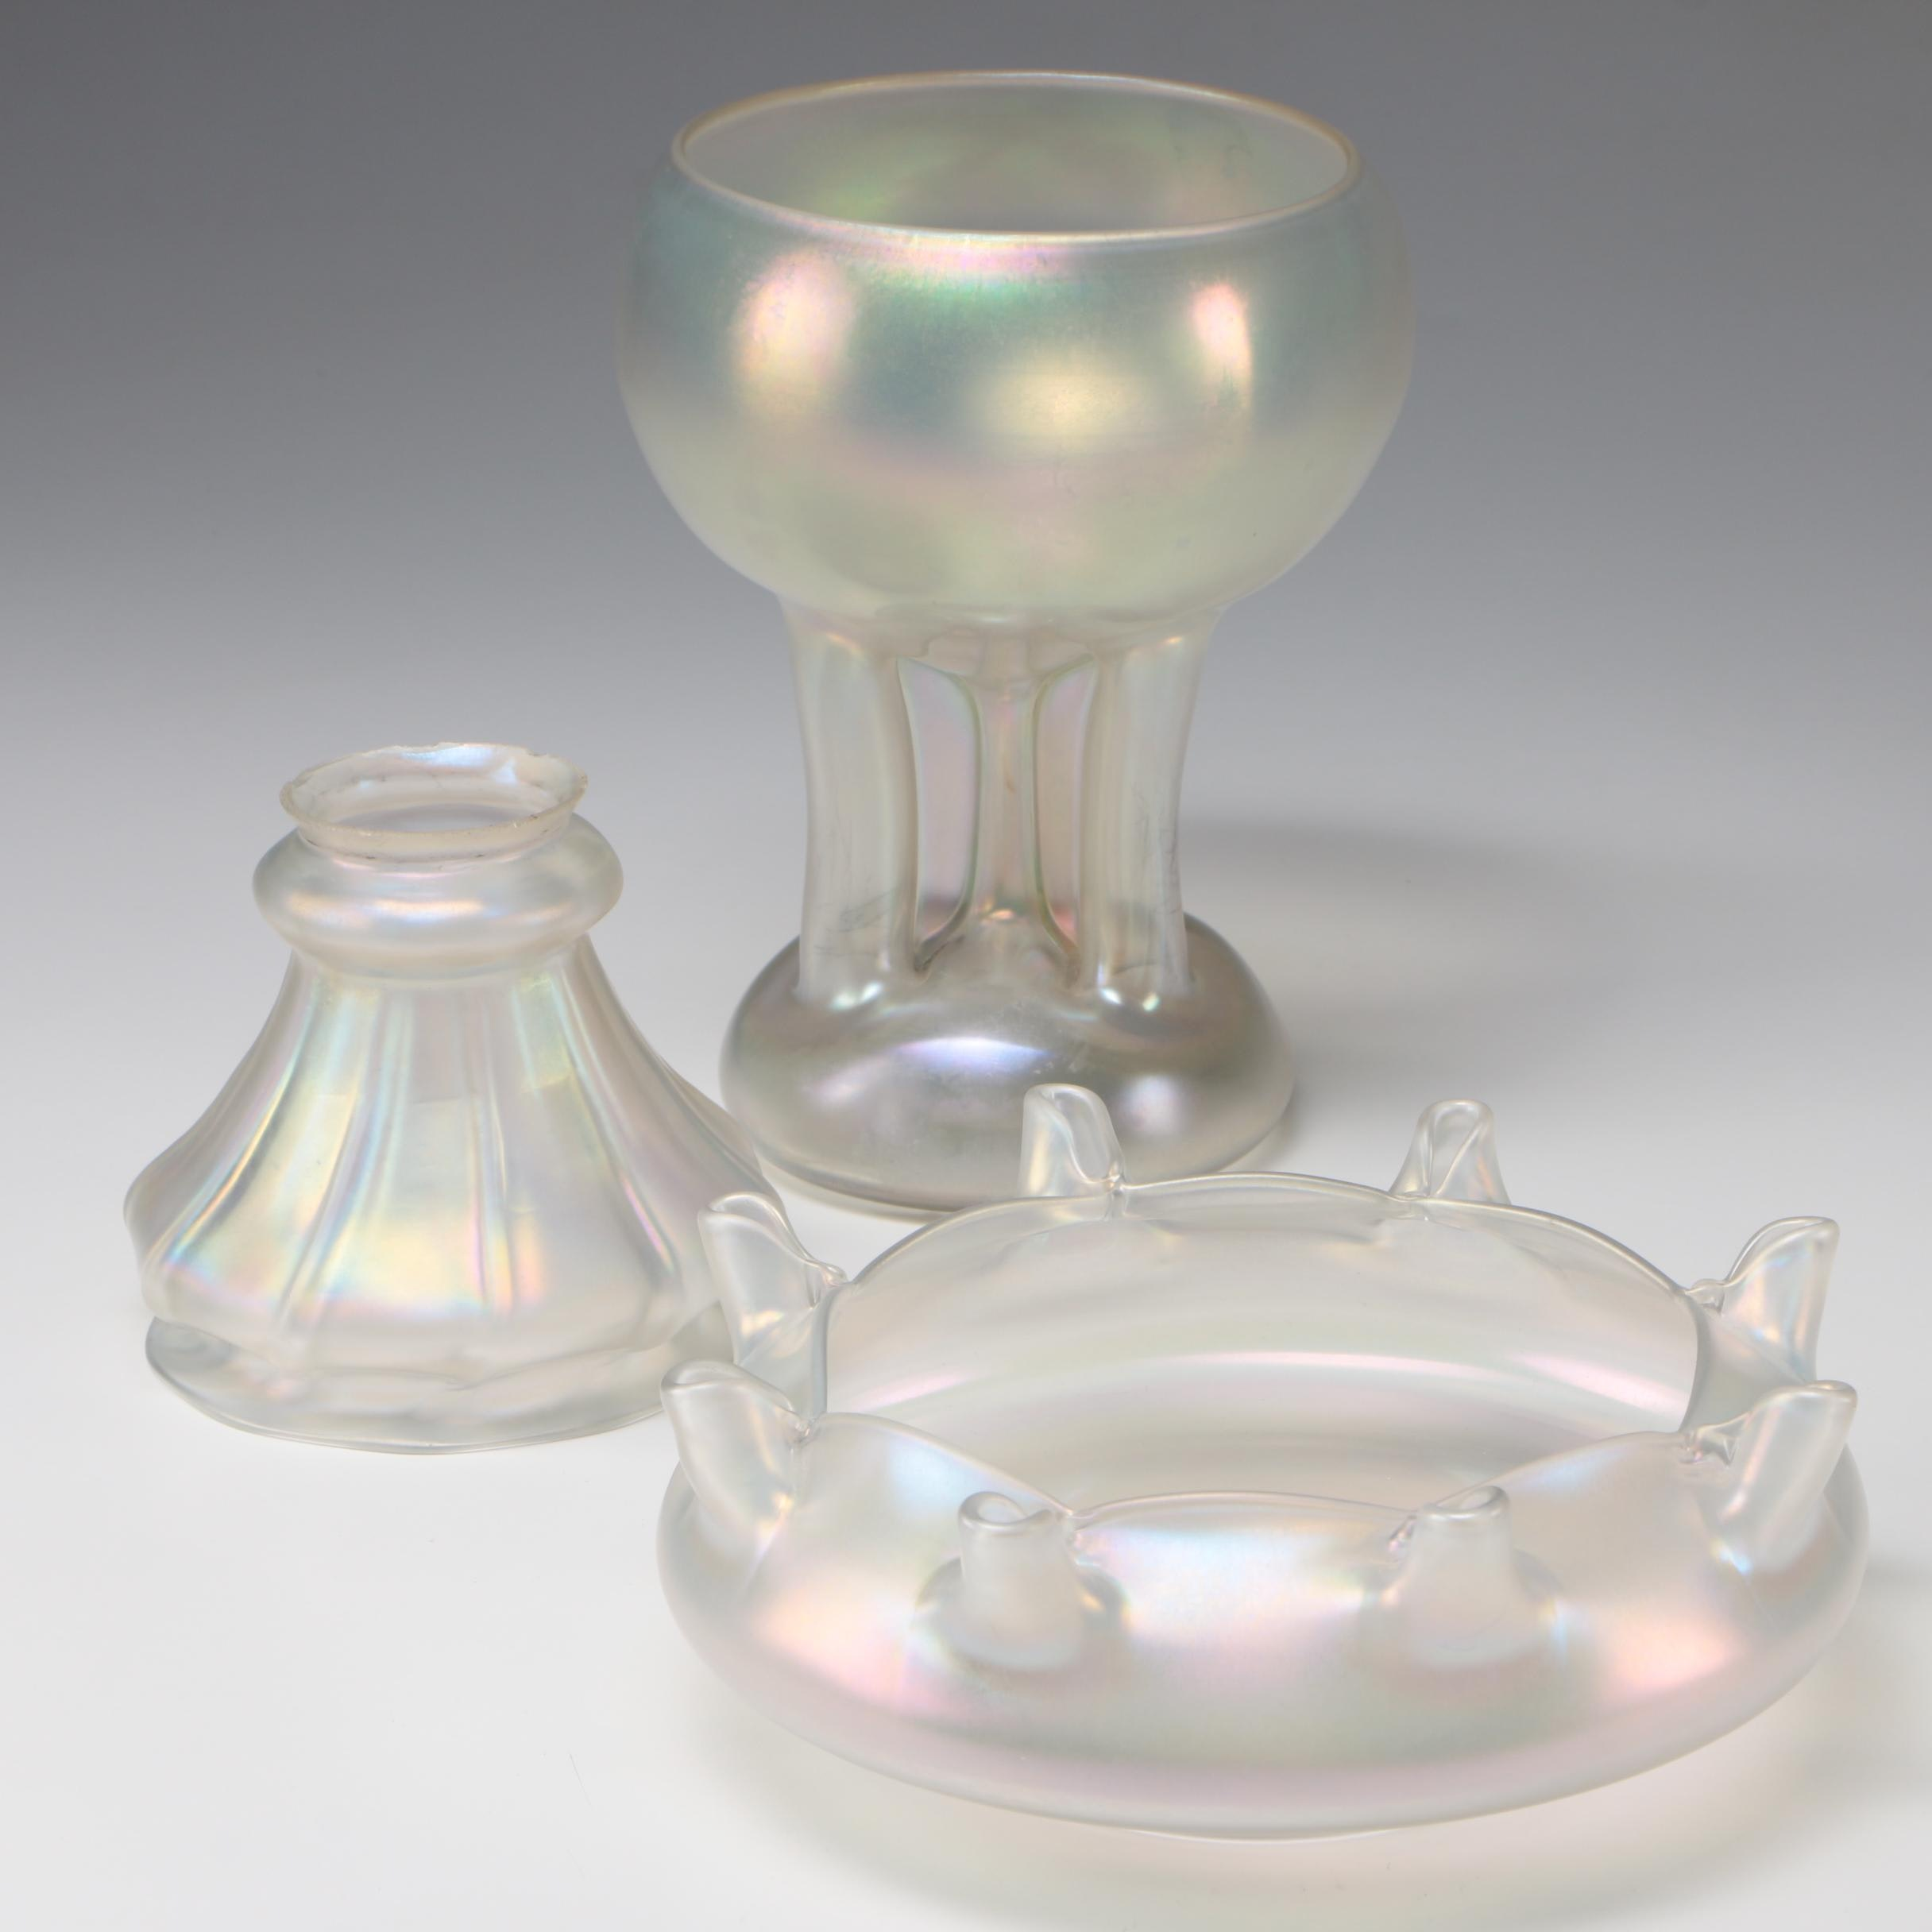 Steuben Verre de Soie Art Glass Vase, Bowl, and Shade, 1903 - 1933